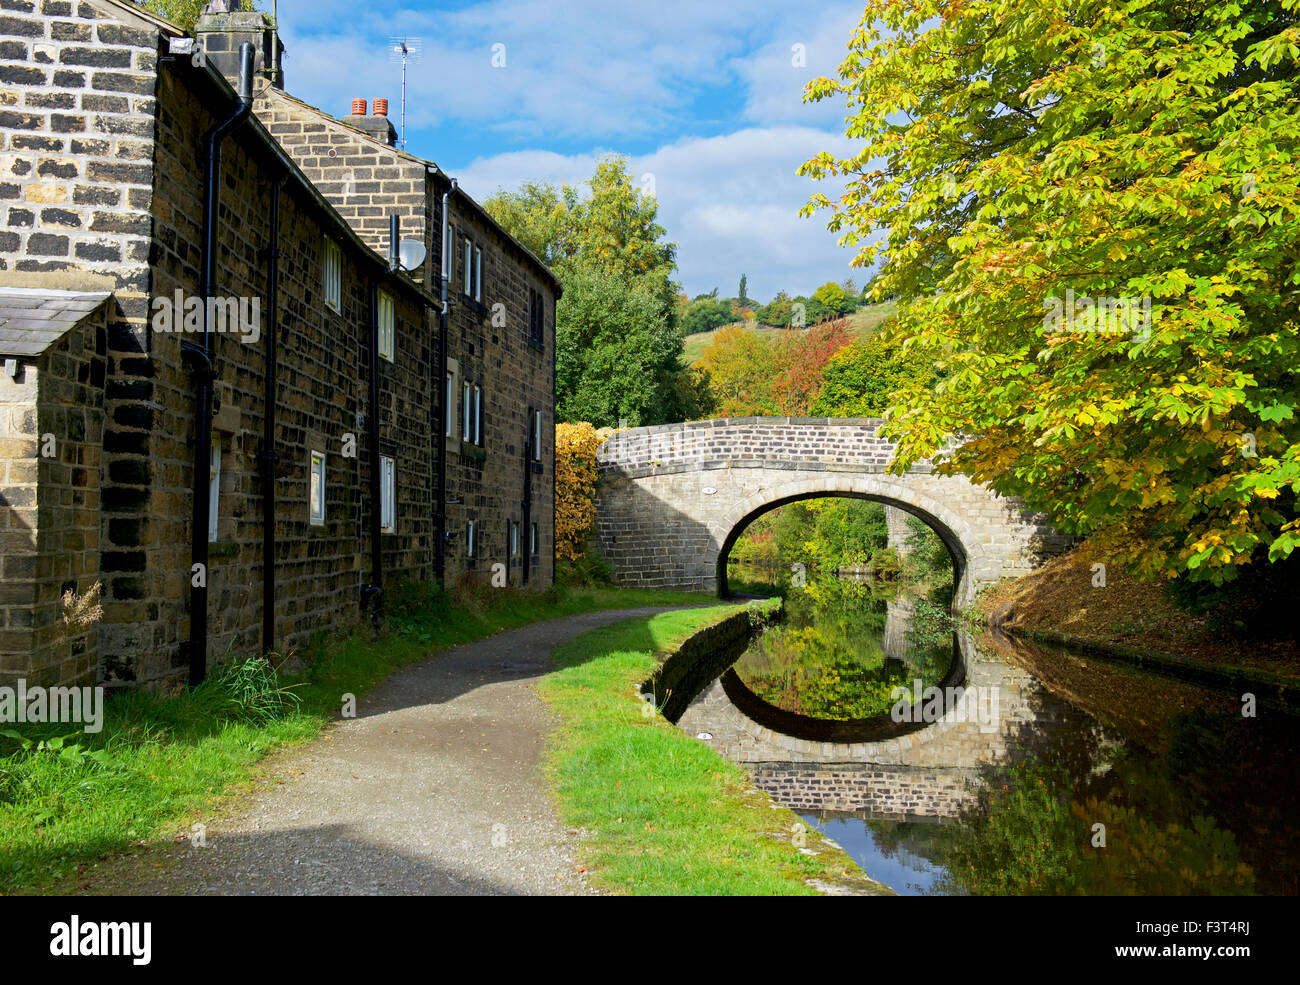 Bridge over the Rochdale Canal at Brearley, Calderdale, West Yorkshire, England UK - Stock Image